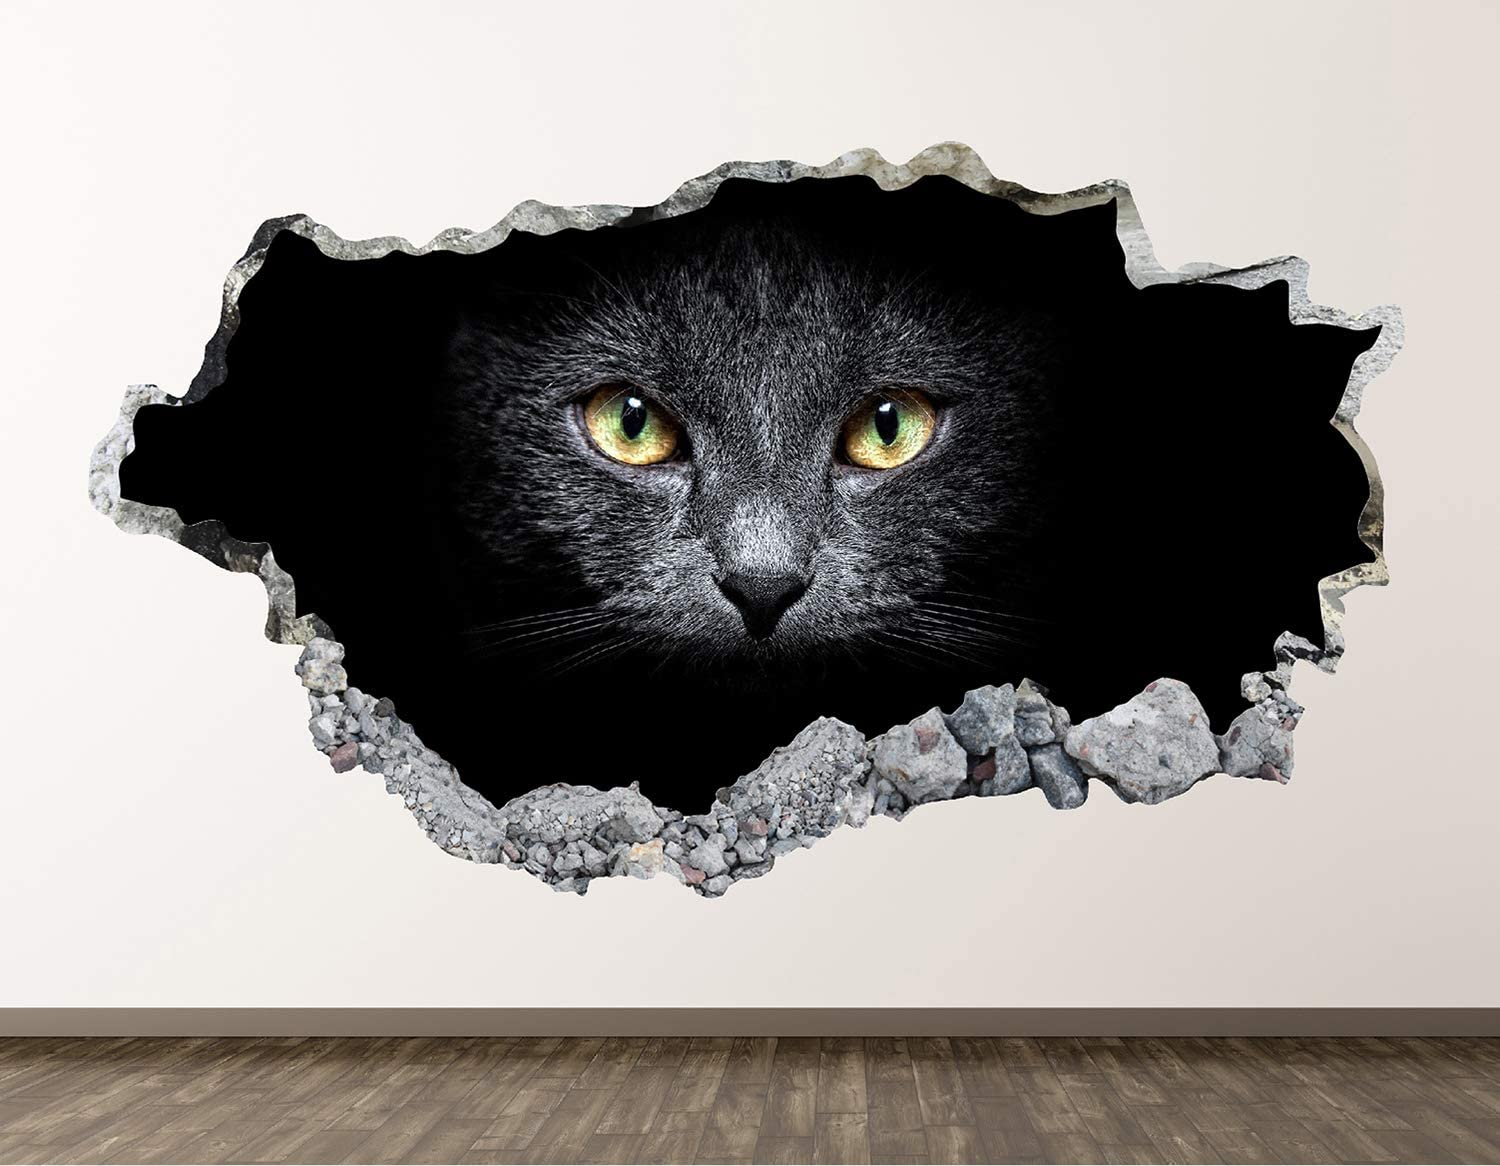 "West Mountain Cat Wall Decal Art Decor 3D Smashed Kids Black Animal Sticker Mural Home Gift BL09 (22"" W x14 H)"